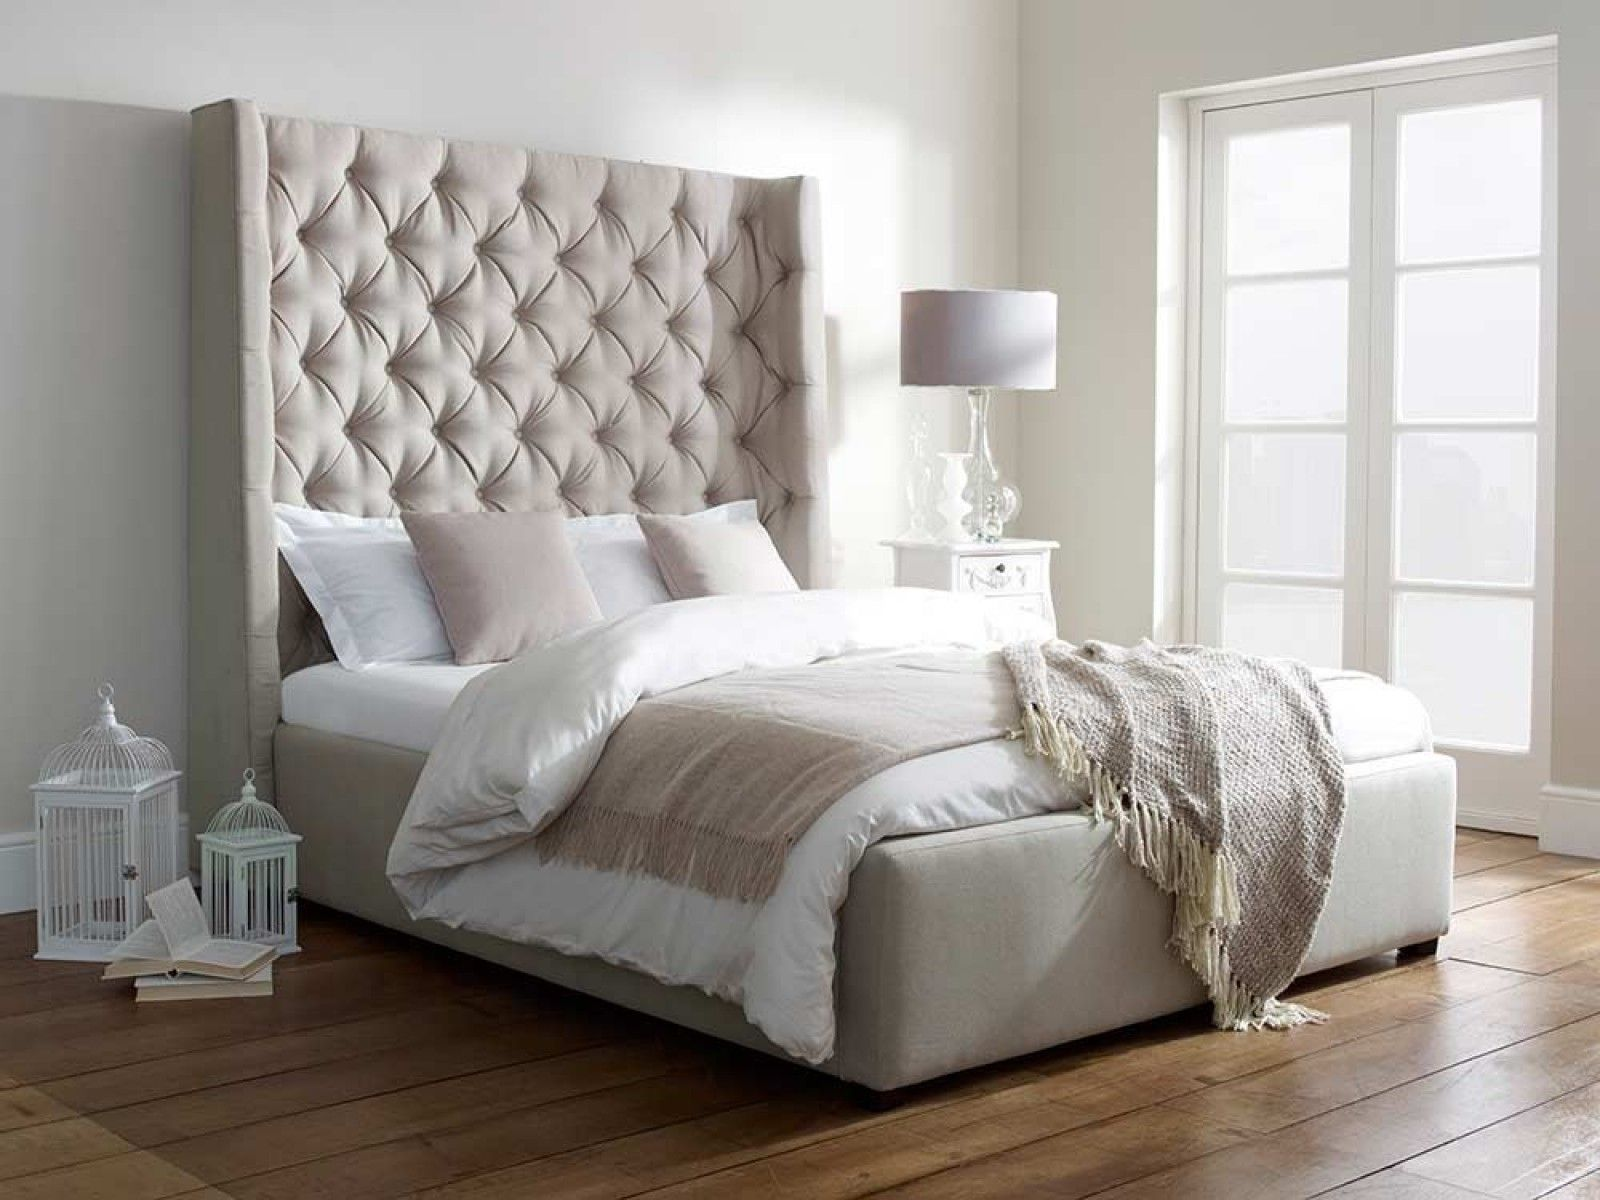 Image Result For Large Headboard Bed Upholstered Beds